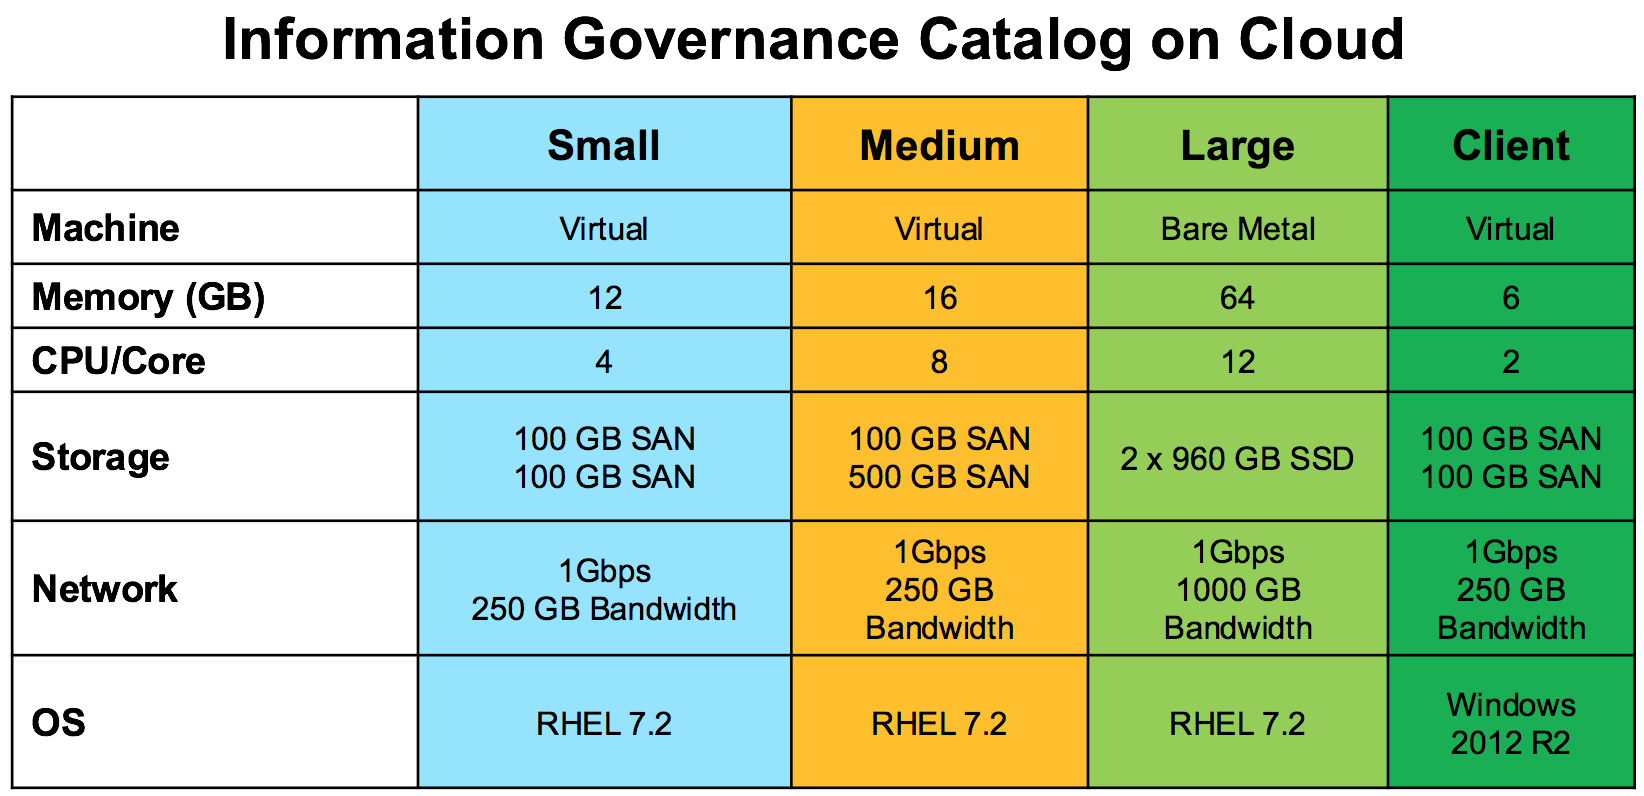 Information Governance Catalog on Cloud Packages